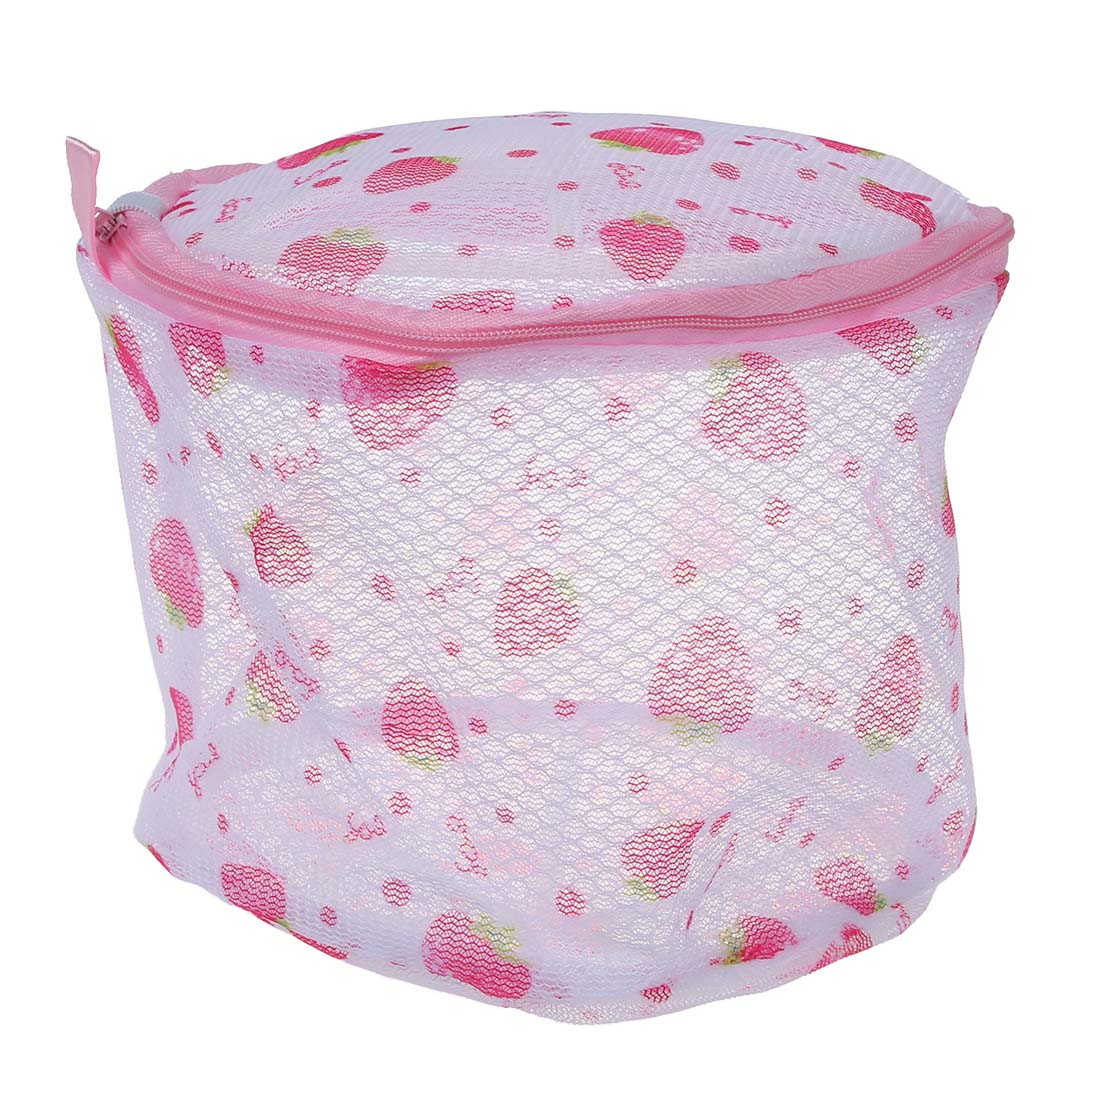 Bra/Underwear/Lingerie/Socks Laundry Mesh Bag Wash Basket--Strawberry or Rose Print